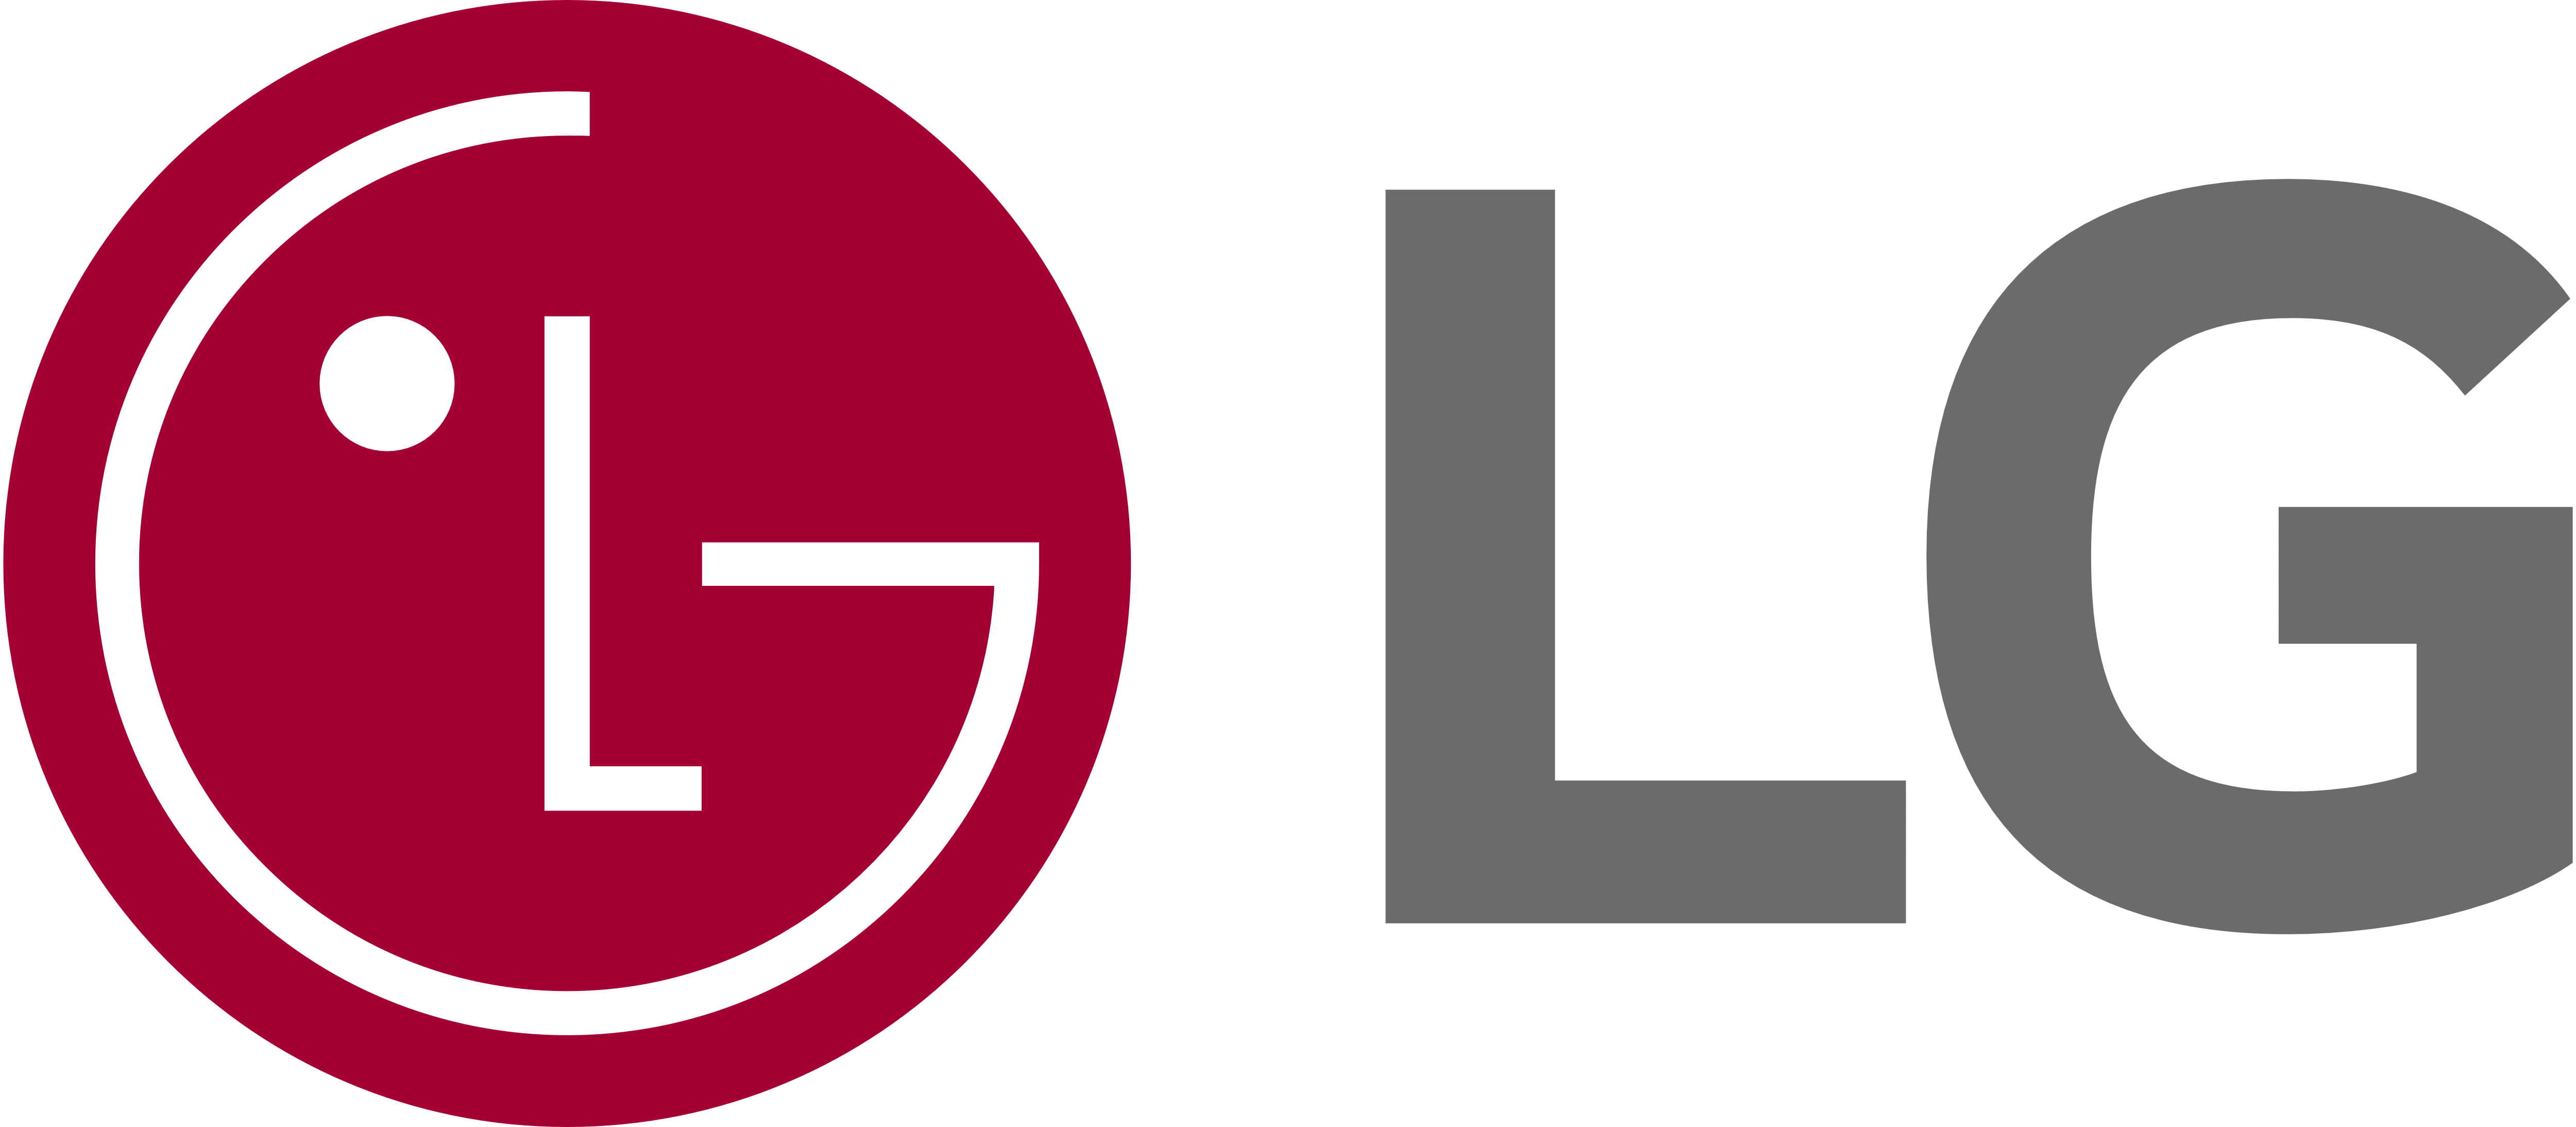 LG Gas Dryer Technician, Whirlpool Washer Repair Technician